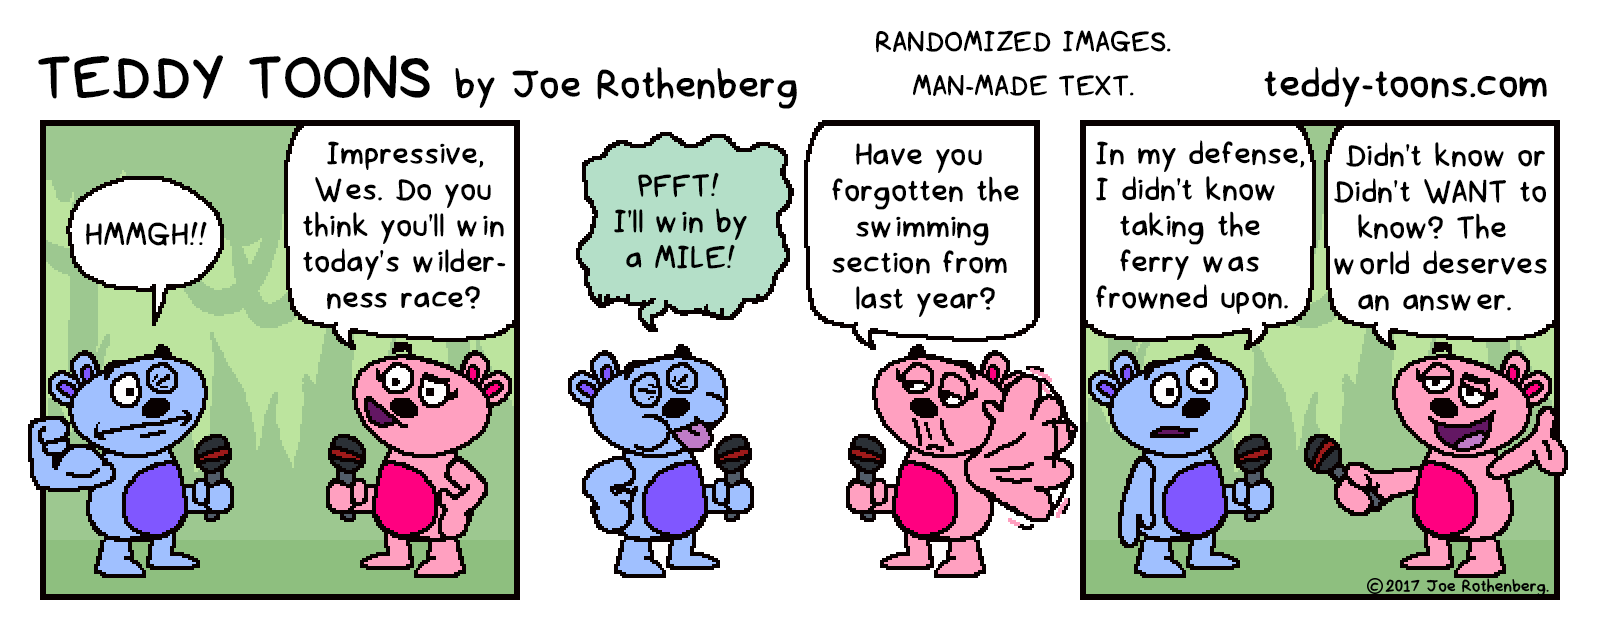 04-03-17.png